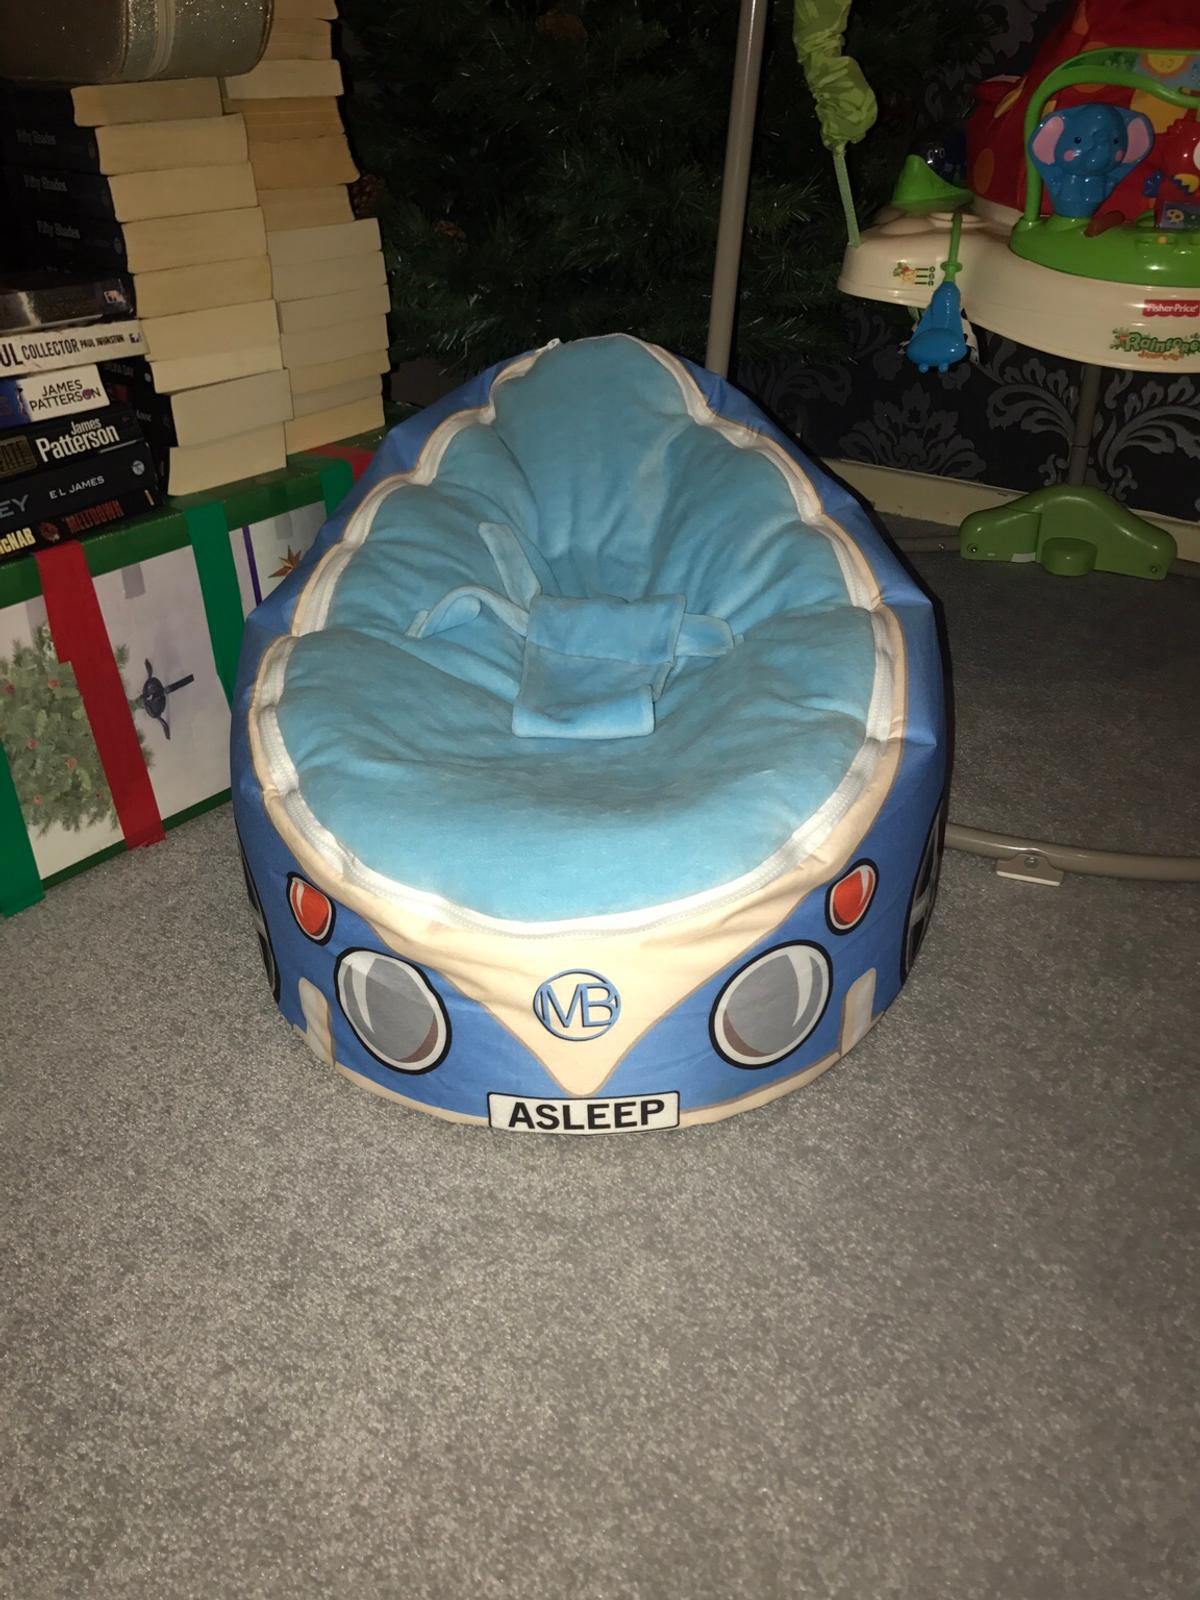 COOL Car Baby Beanbag - Removable covers so can be washed. Also adjustable harness.